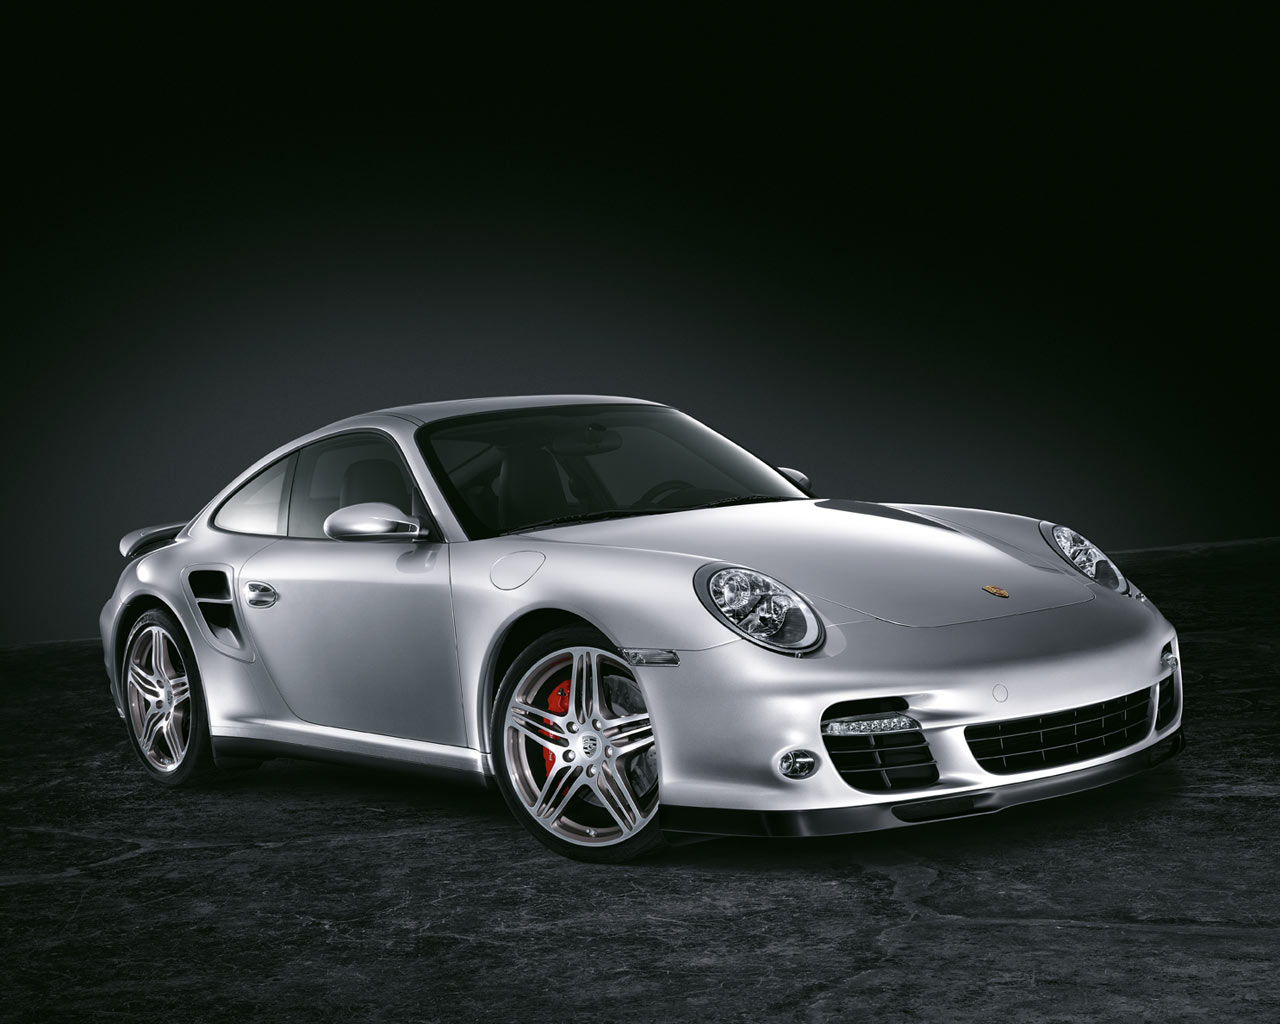 Official Porsche 997 Turbo